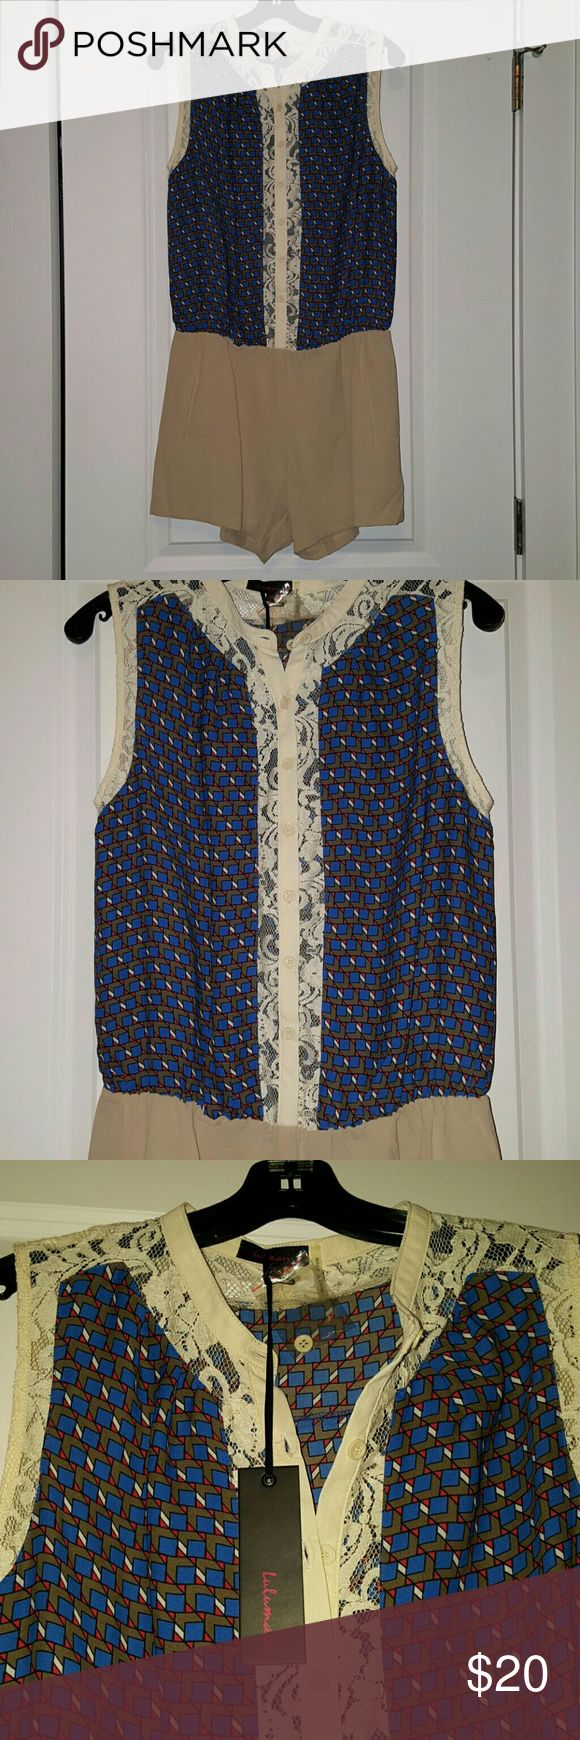 """Lulumari print and lace sleeveless romper Size L Gorgeous sleeveless shorts romper, geo print and contrast lace trim, shorts have pockets! Lace is see through down front. Size L but fits like M. 19""""flat across chest, 15"""" waist stretches to 19"""",    12"""" short. Anthropologie Shorts"""